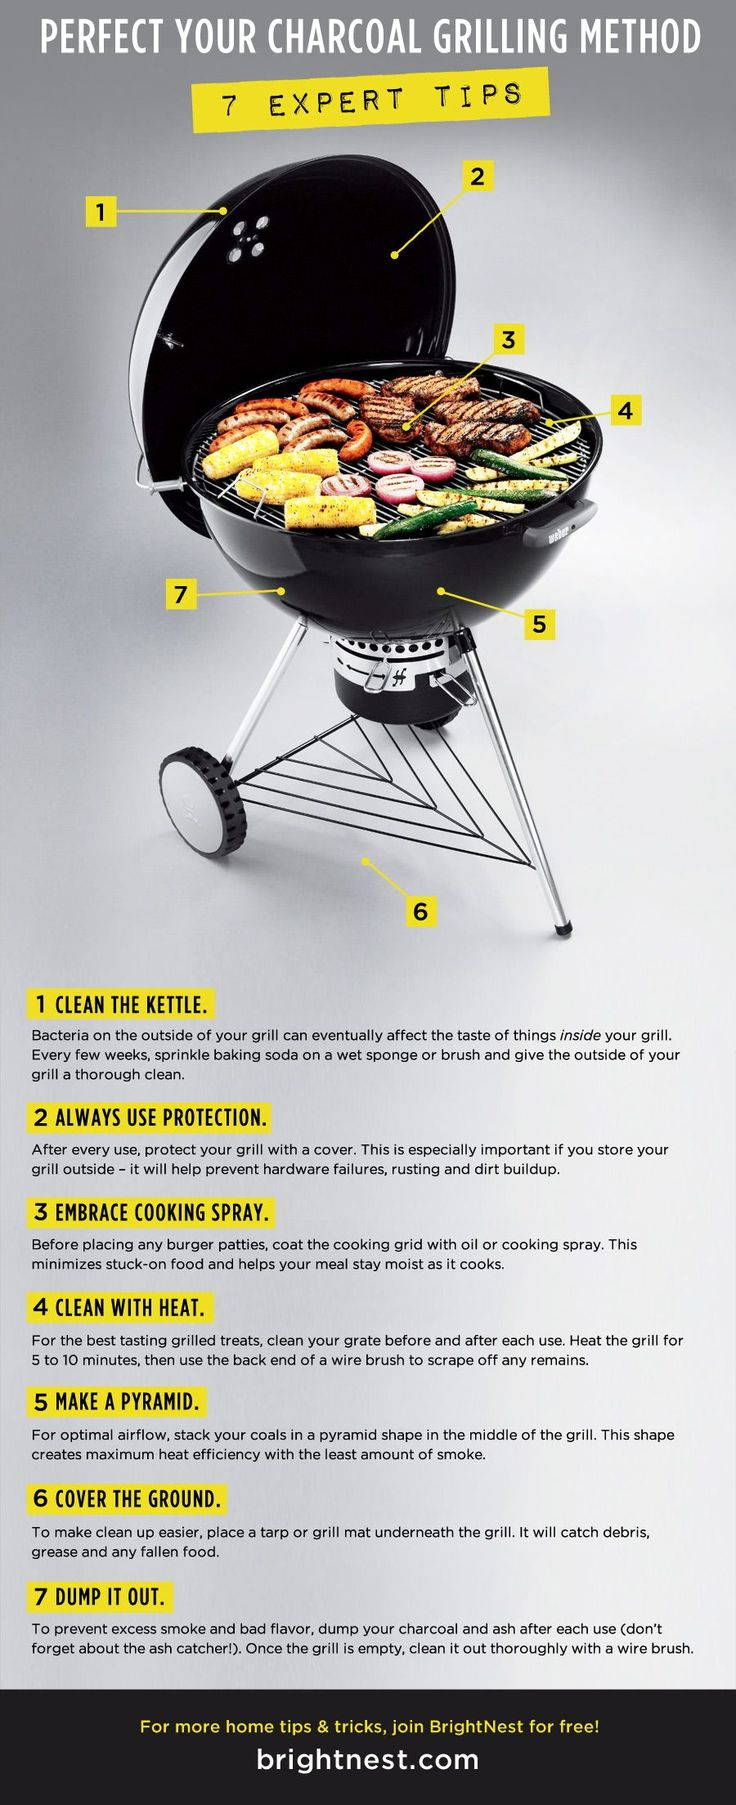 10 Tips for the Perfect Barbecue